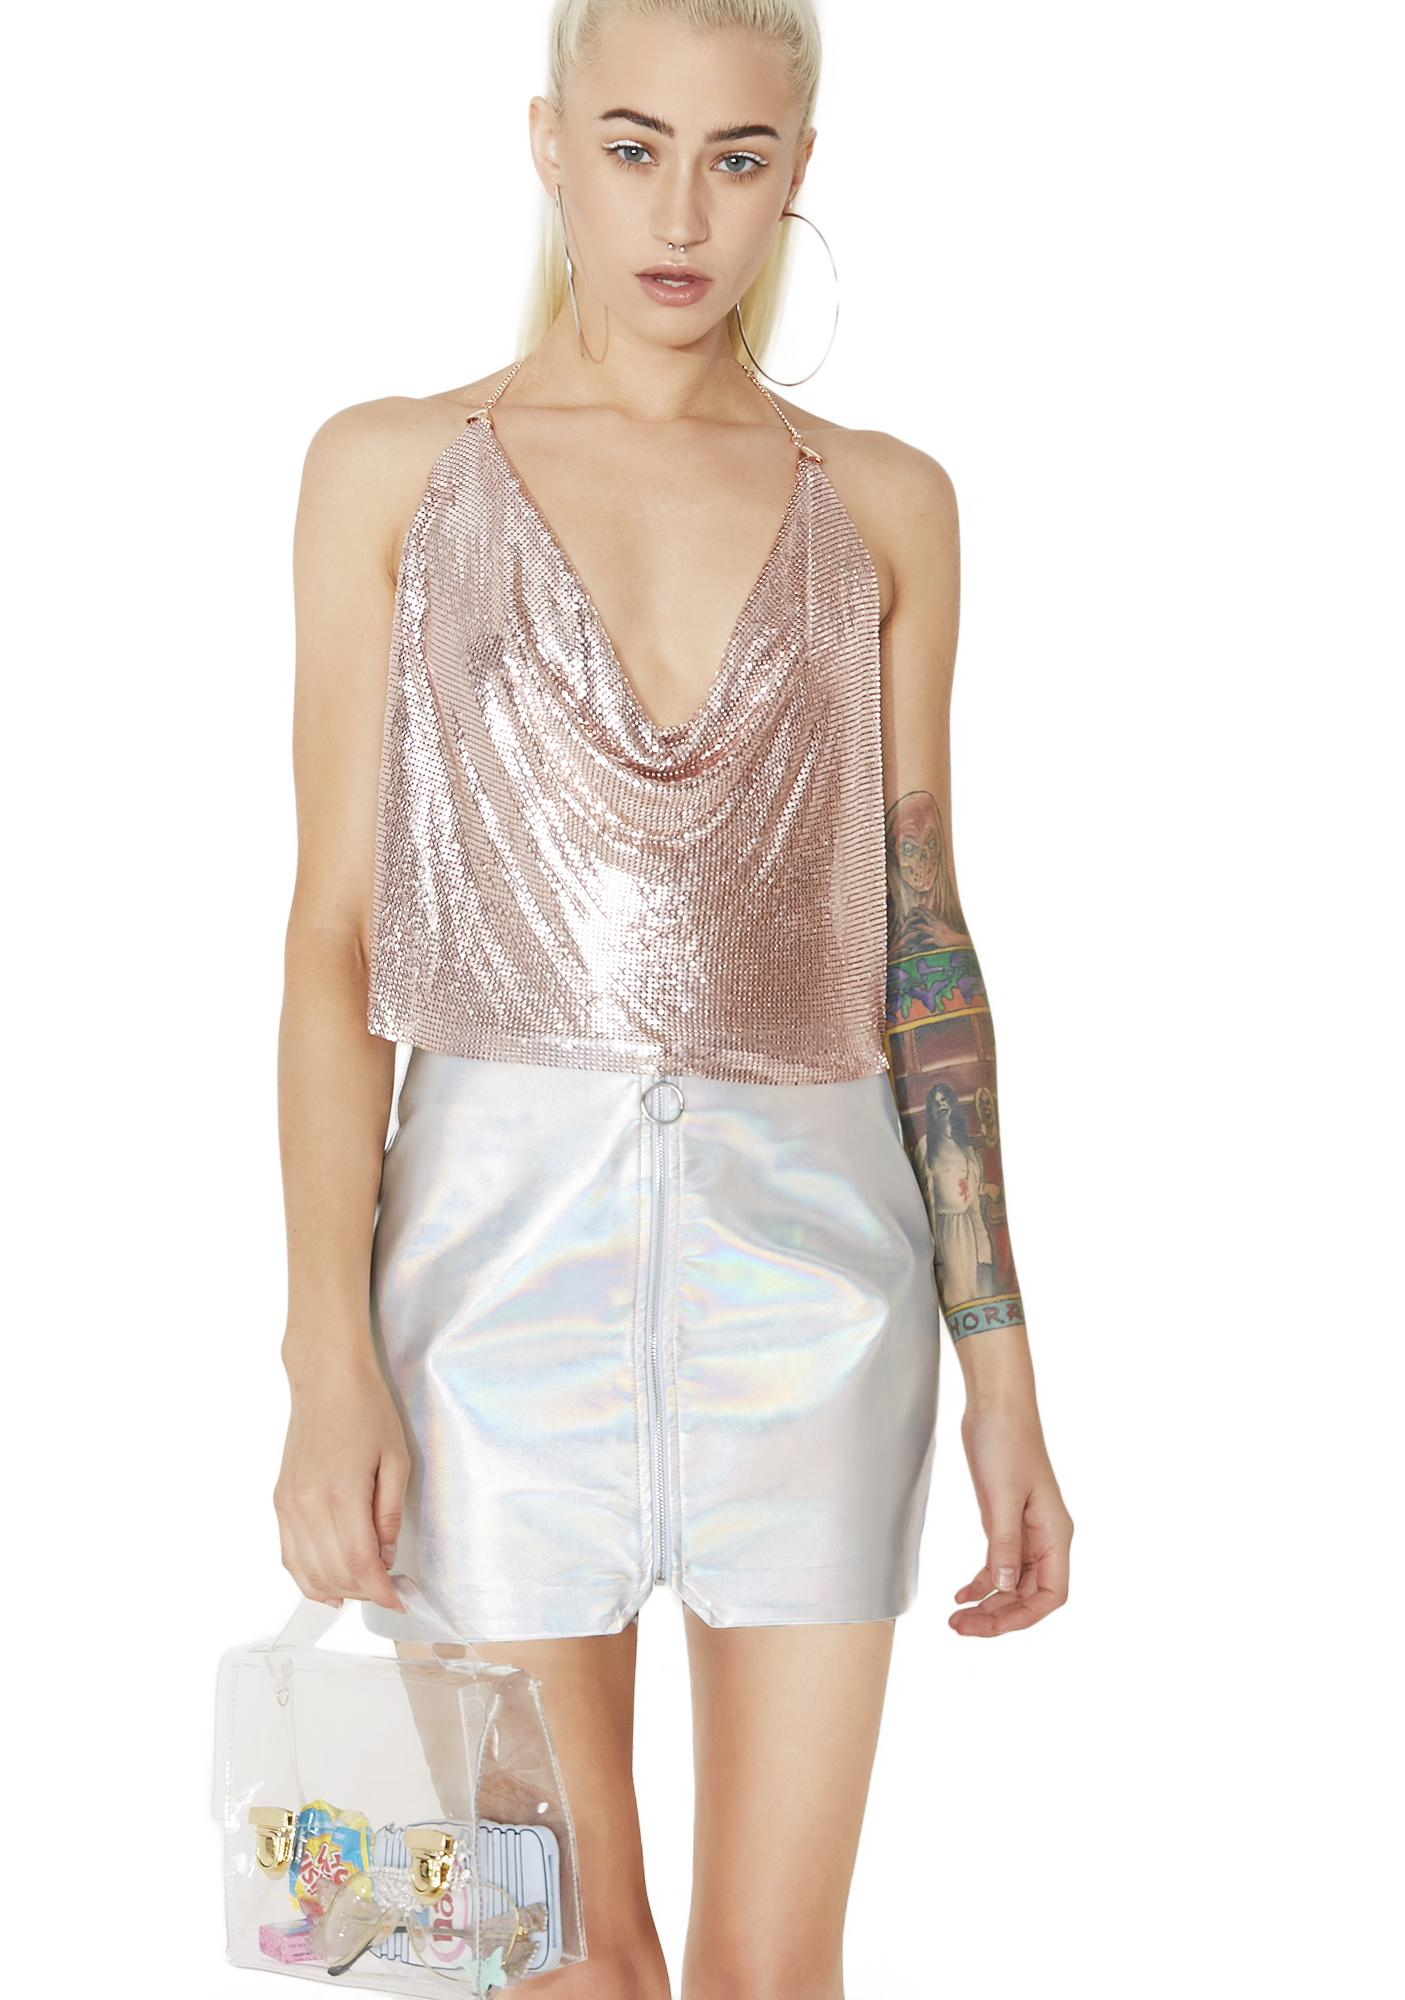 Rose Whole Shebang Chainmail Crop Top